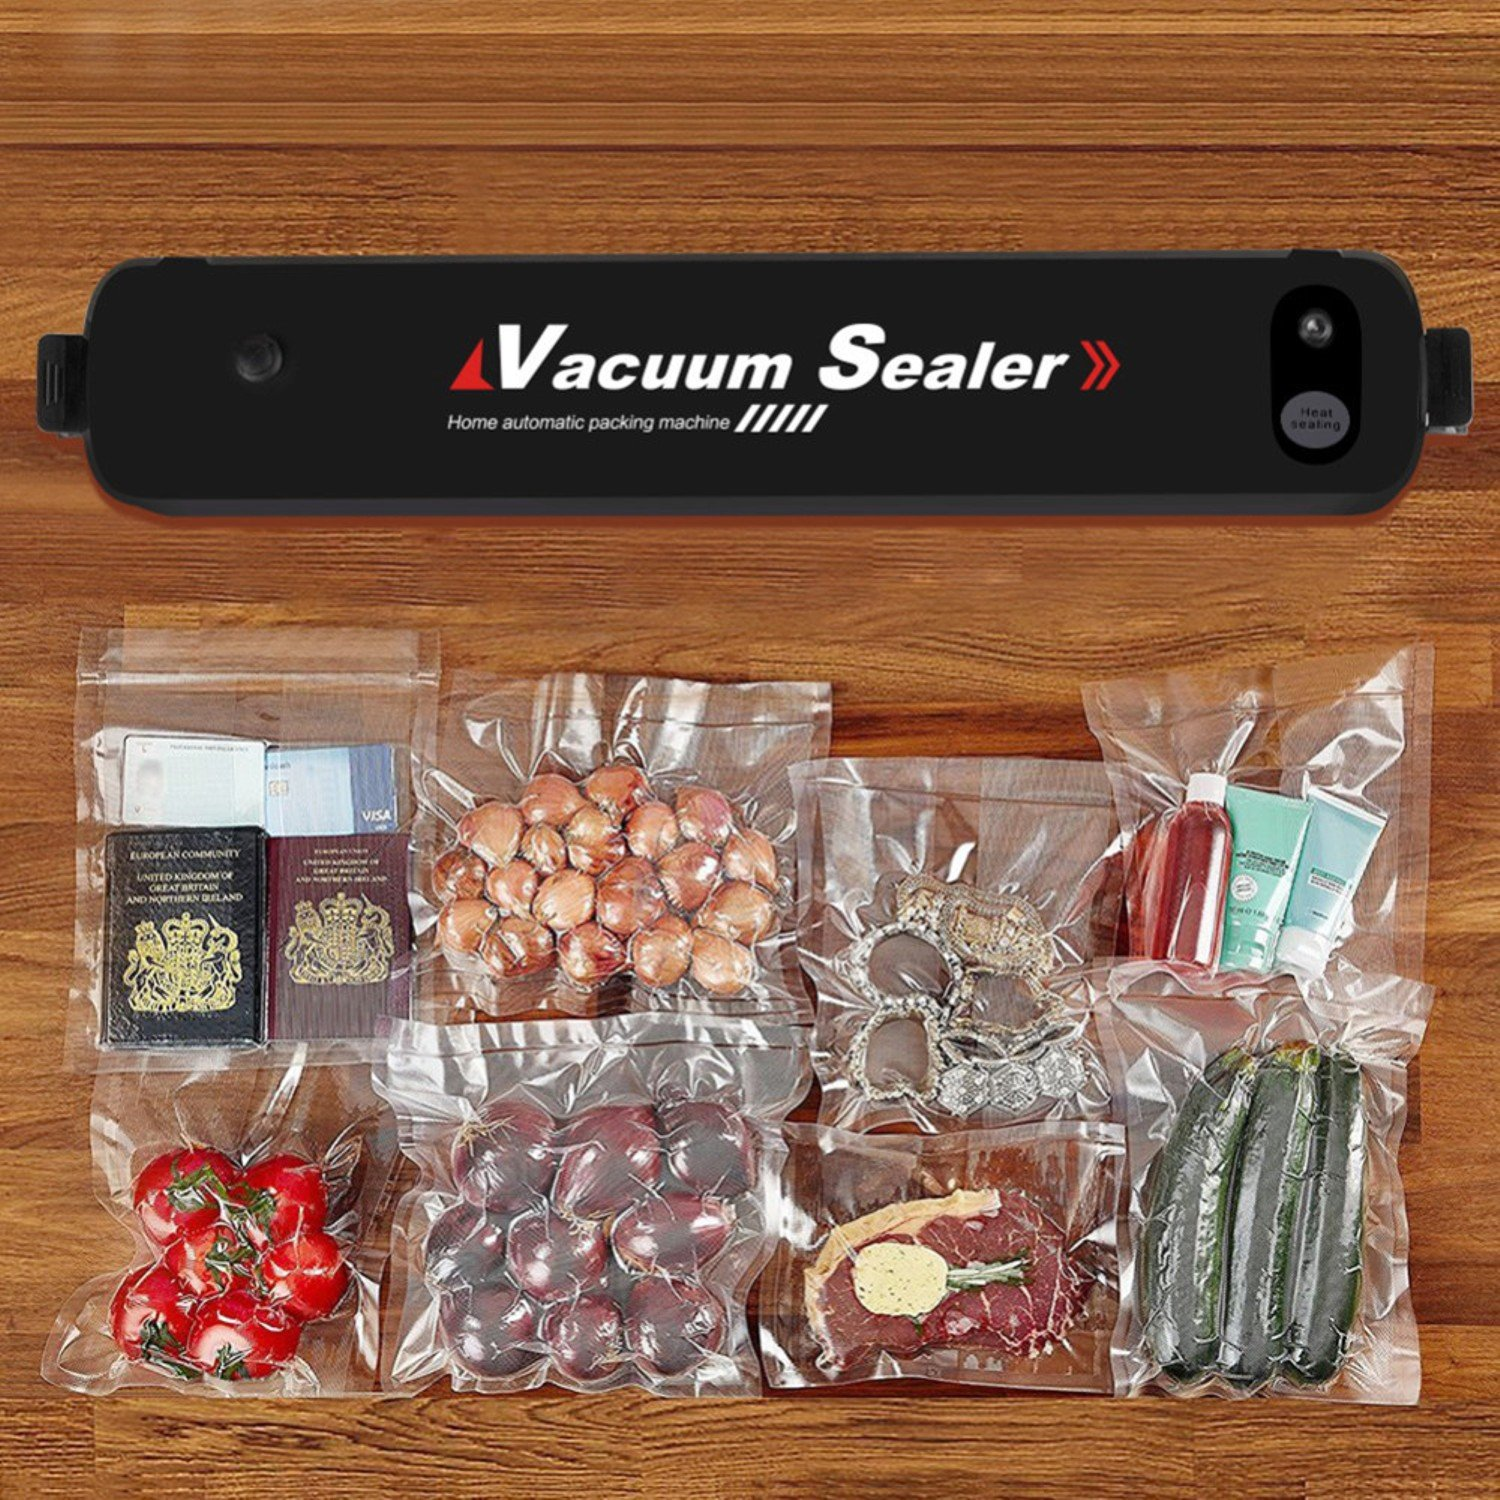 Automatical 90W Household Mini Vacuum Sealer Food Preservation Machine + 15 Sealing Bags Kitchen Tool by Gogil (Image #3)